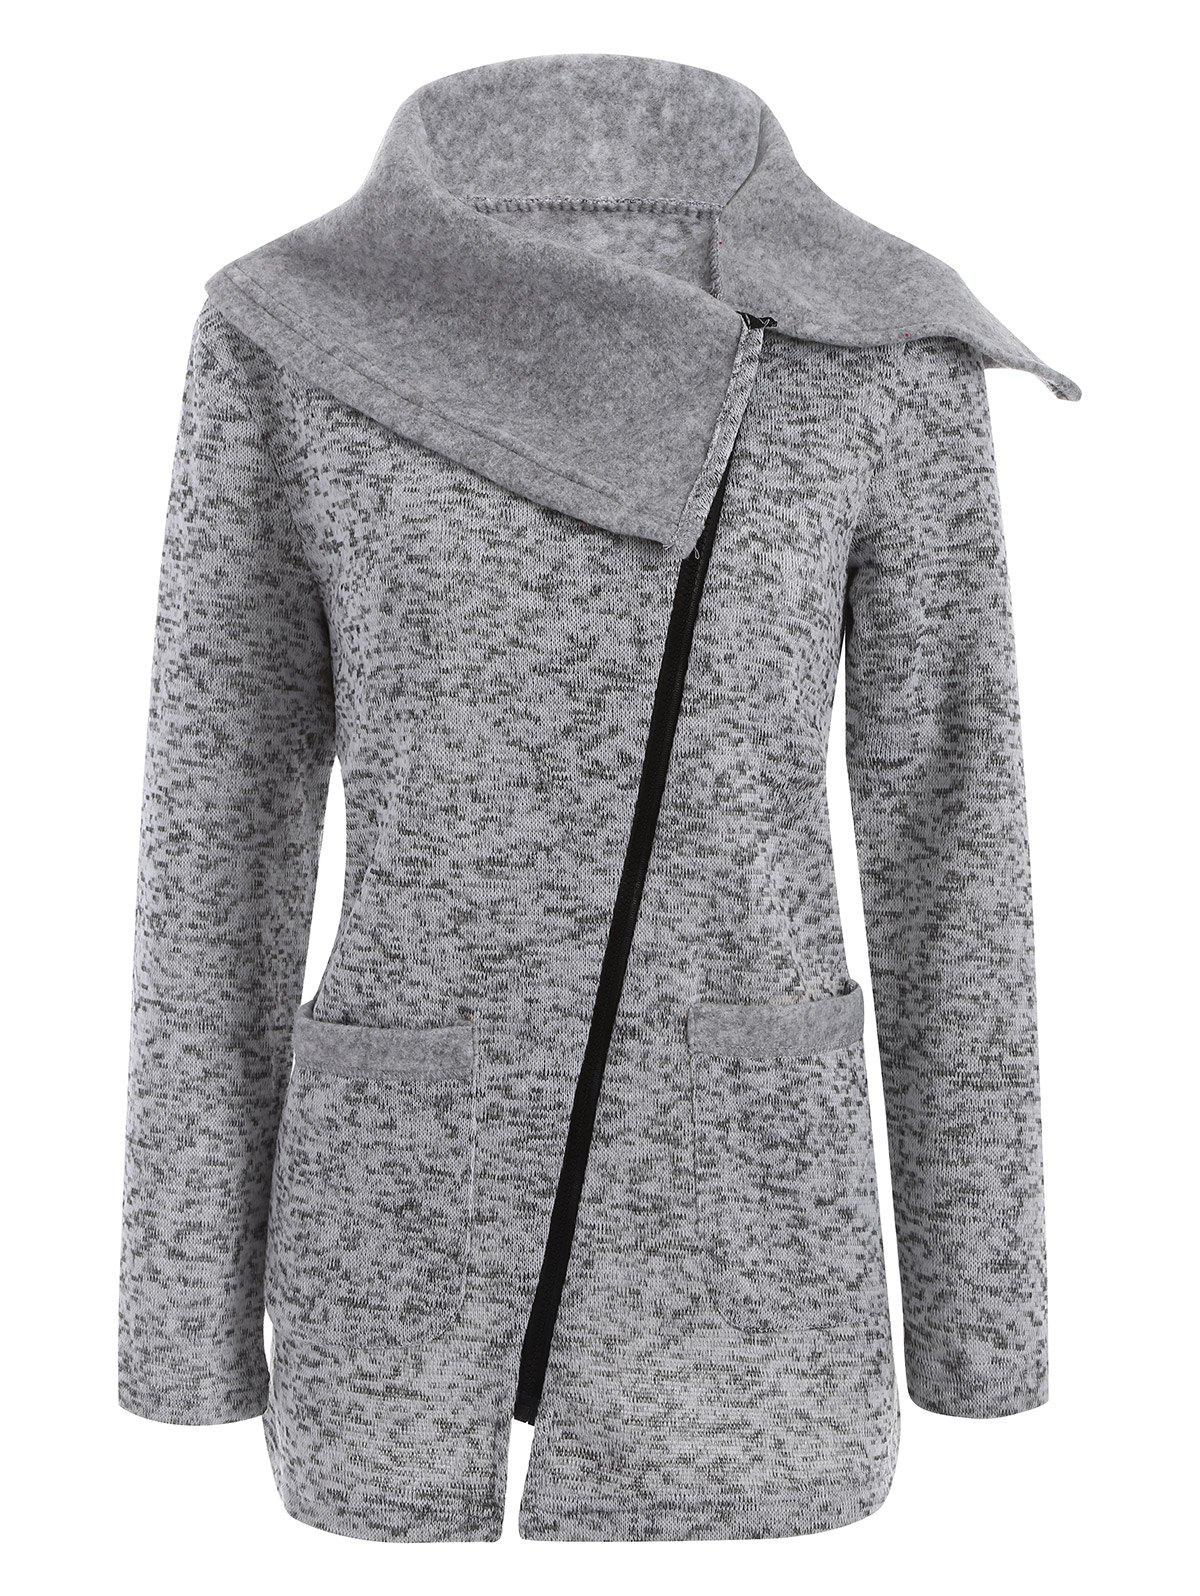 Asymmetric Zipper Knitted Long CoatWOMEN<br><br>Size: M; Color: LIGHT GRAY; Clothes Type: Jackets; Material: Cotton,Cotton Blend,Polyester; Type: Slim; Shirt Length: Long; Sleeve Length: Full; Collar: Turn-down Collar; Closure Type: Zipper; Pattern Type: Solid; Embellishment: Pockets; Style: Casual; Season: Winter; Elasticity: Elastic; Weight: 0.470kg; Package Contents: 1 x Coat;